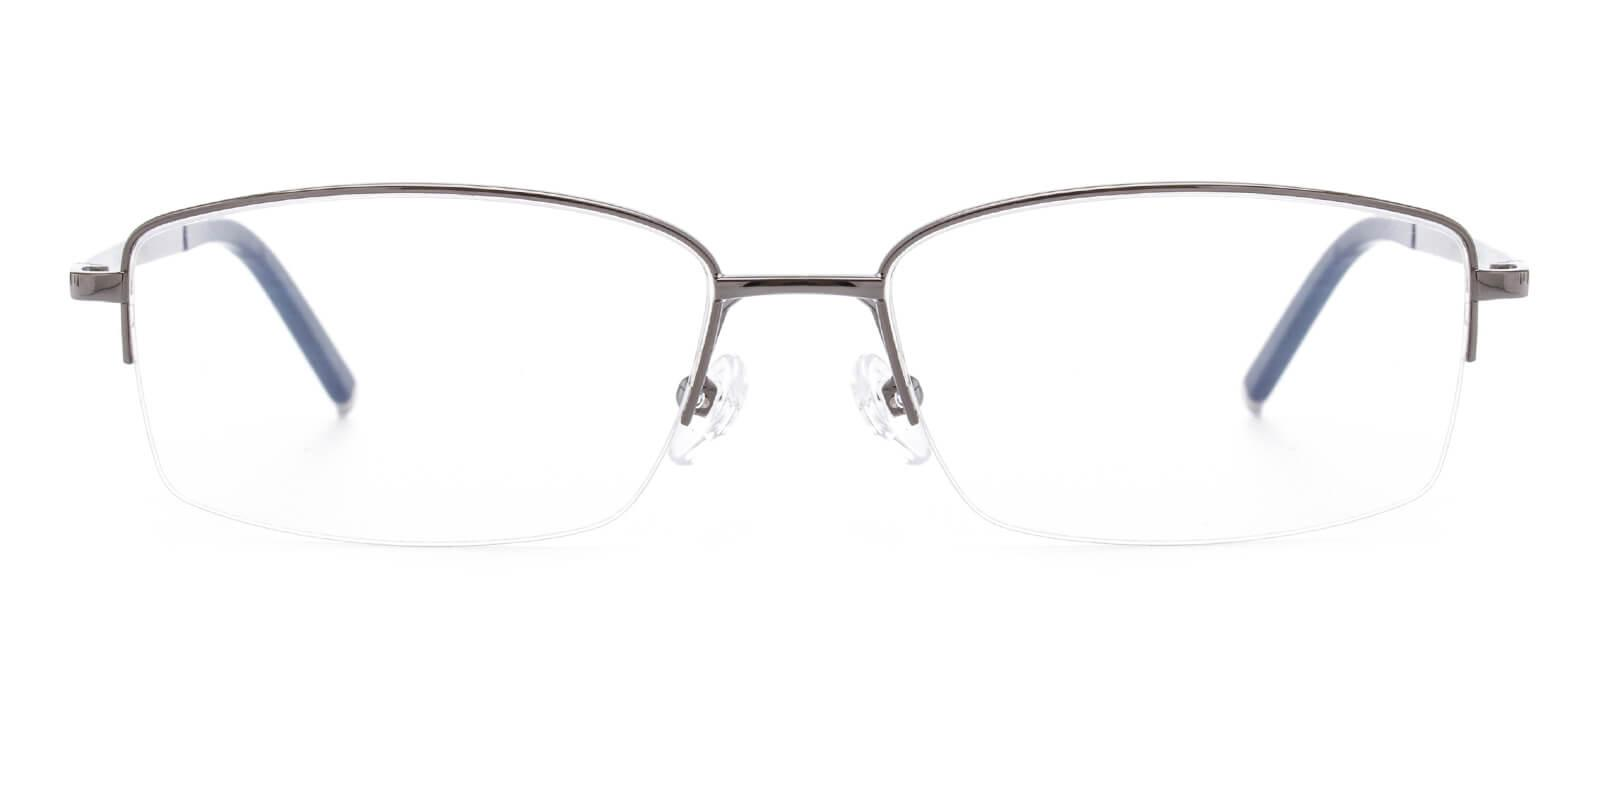 Revelino-Gun-Rectangle-Titanium-Eyeglasses-additional2